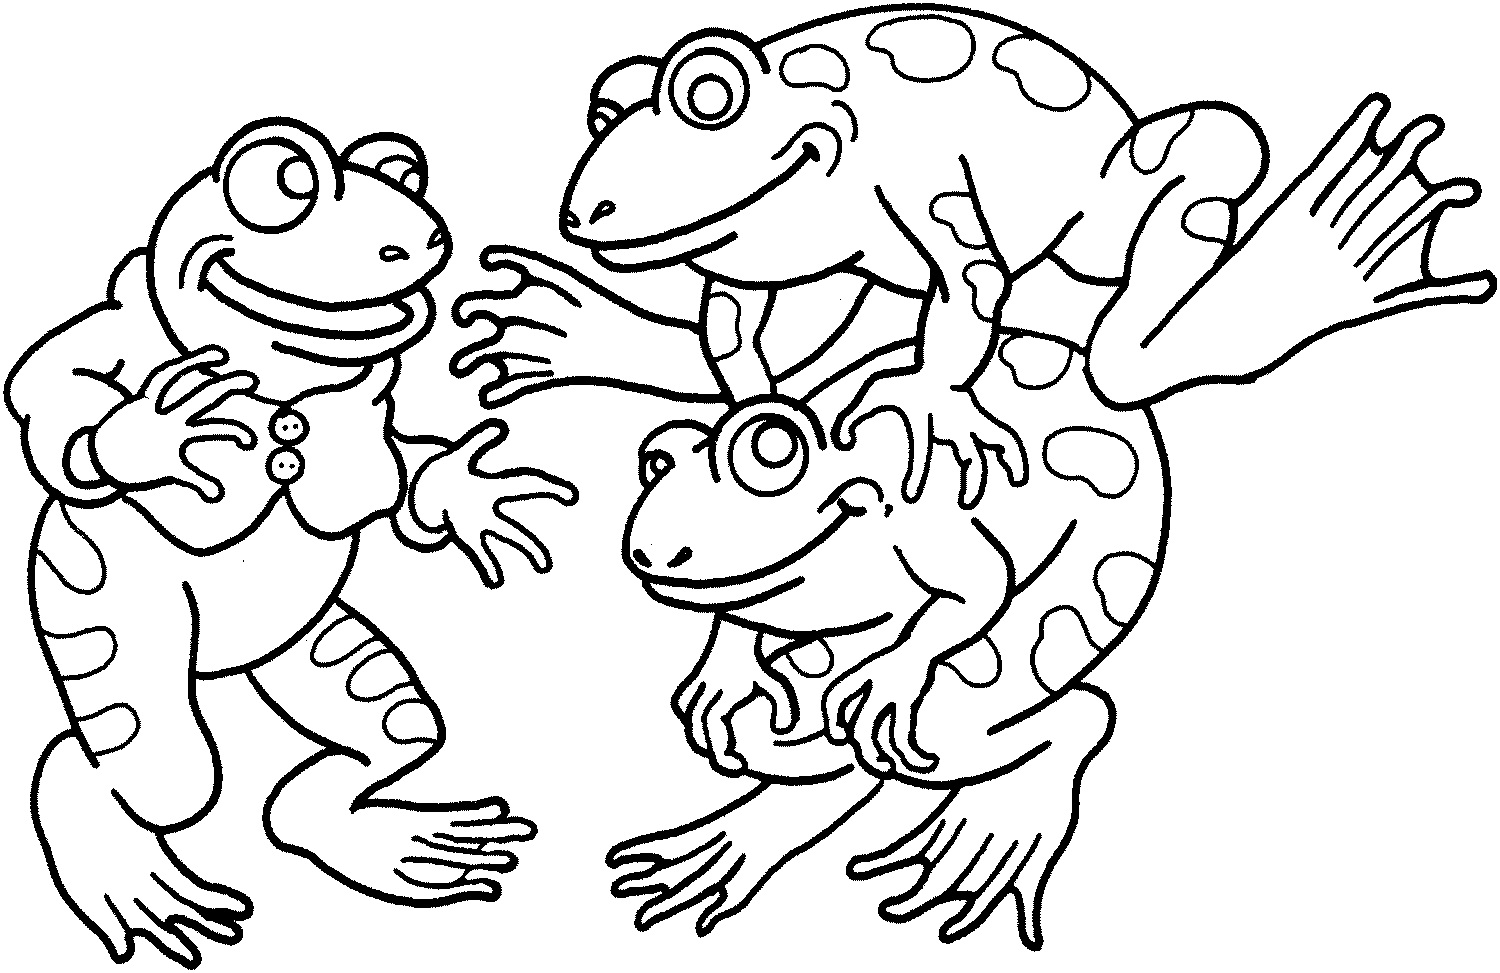 Free Printable Frog Coloring Pages For Kids Frog Printable Coloring Pages